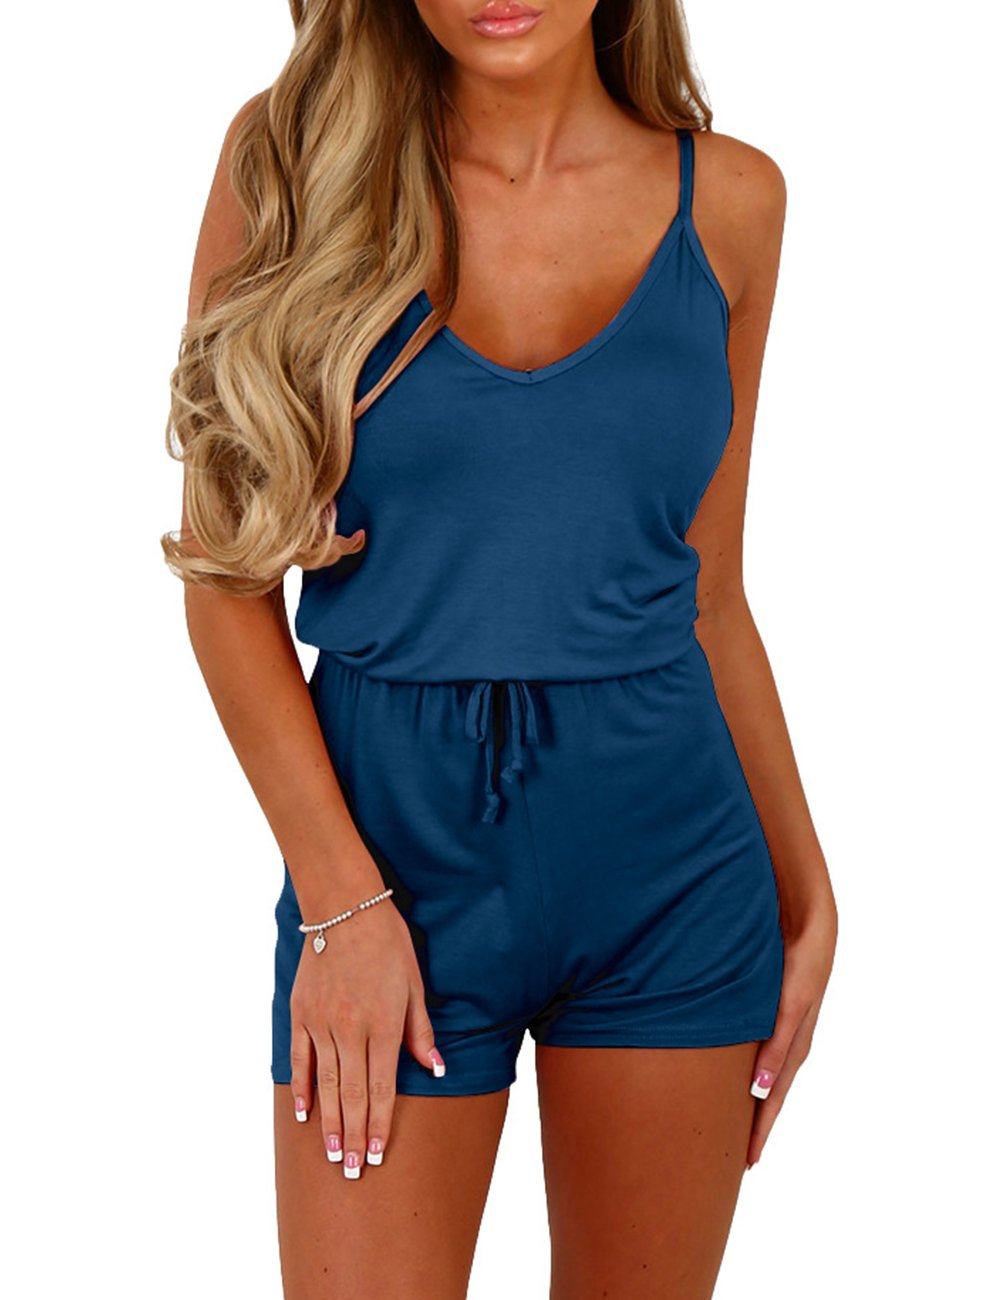 Sexyshine Women's Sexy Spaghetti Strap V Neck Beachwear Short One Piece Rompers Jumpsuits(Be,S)